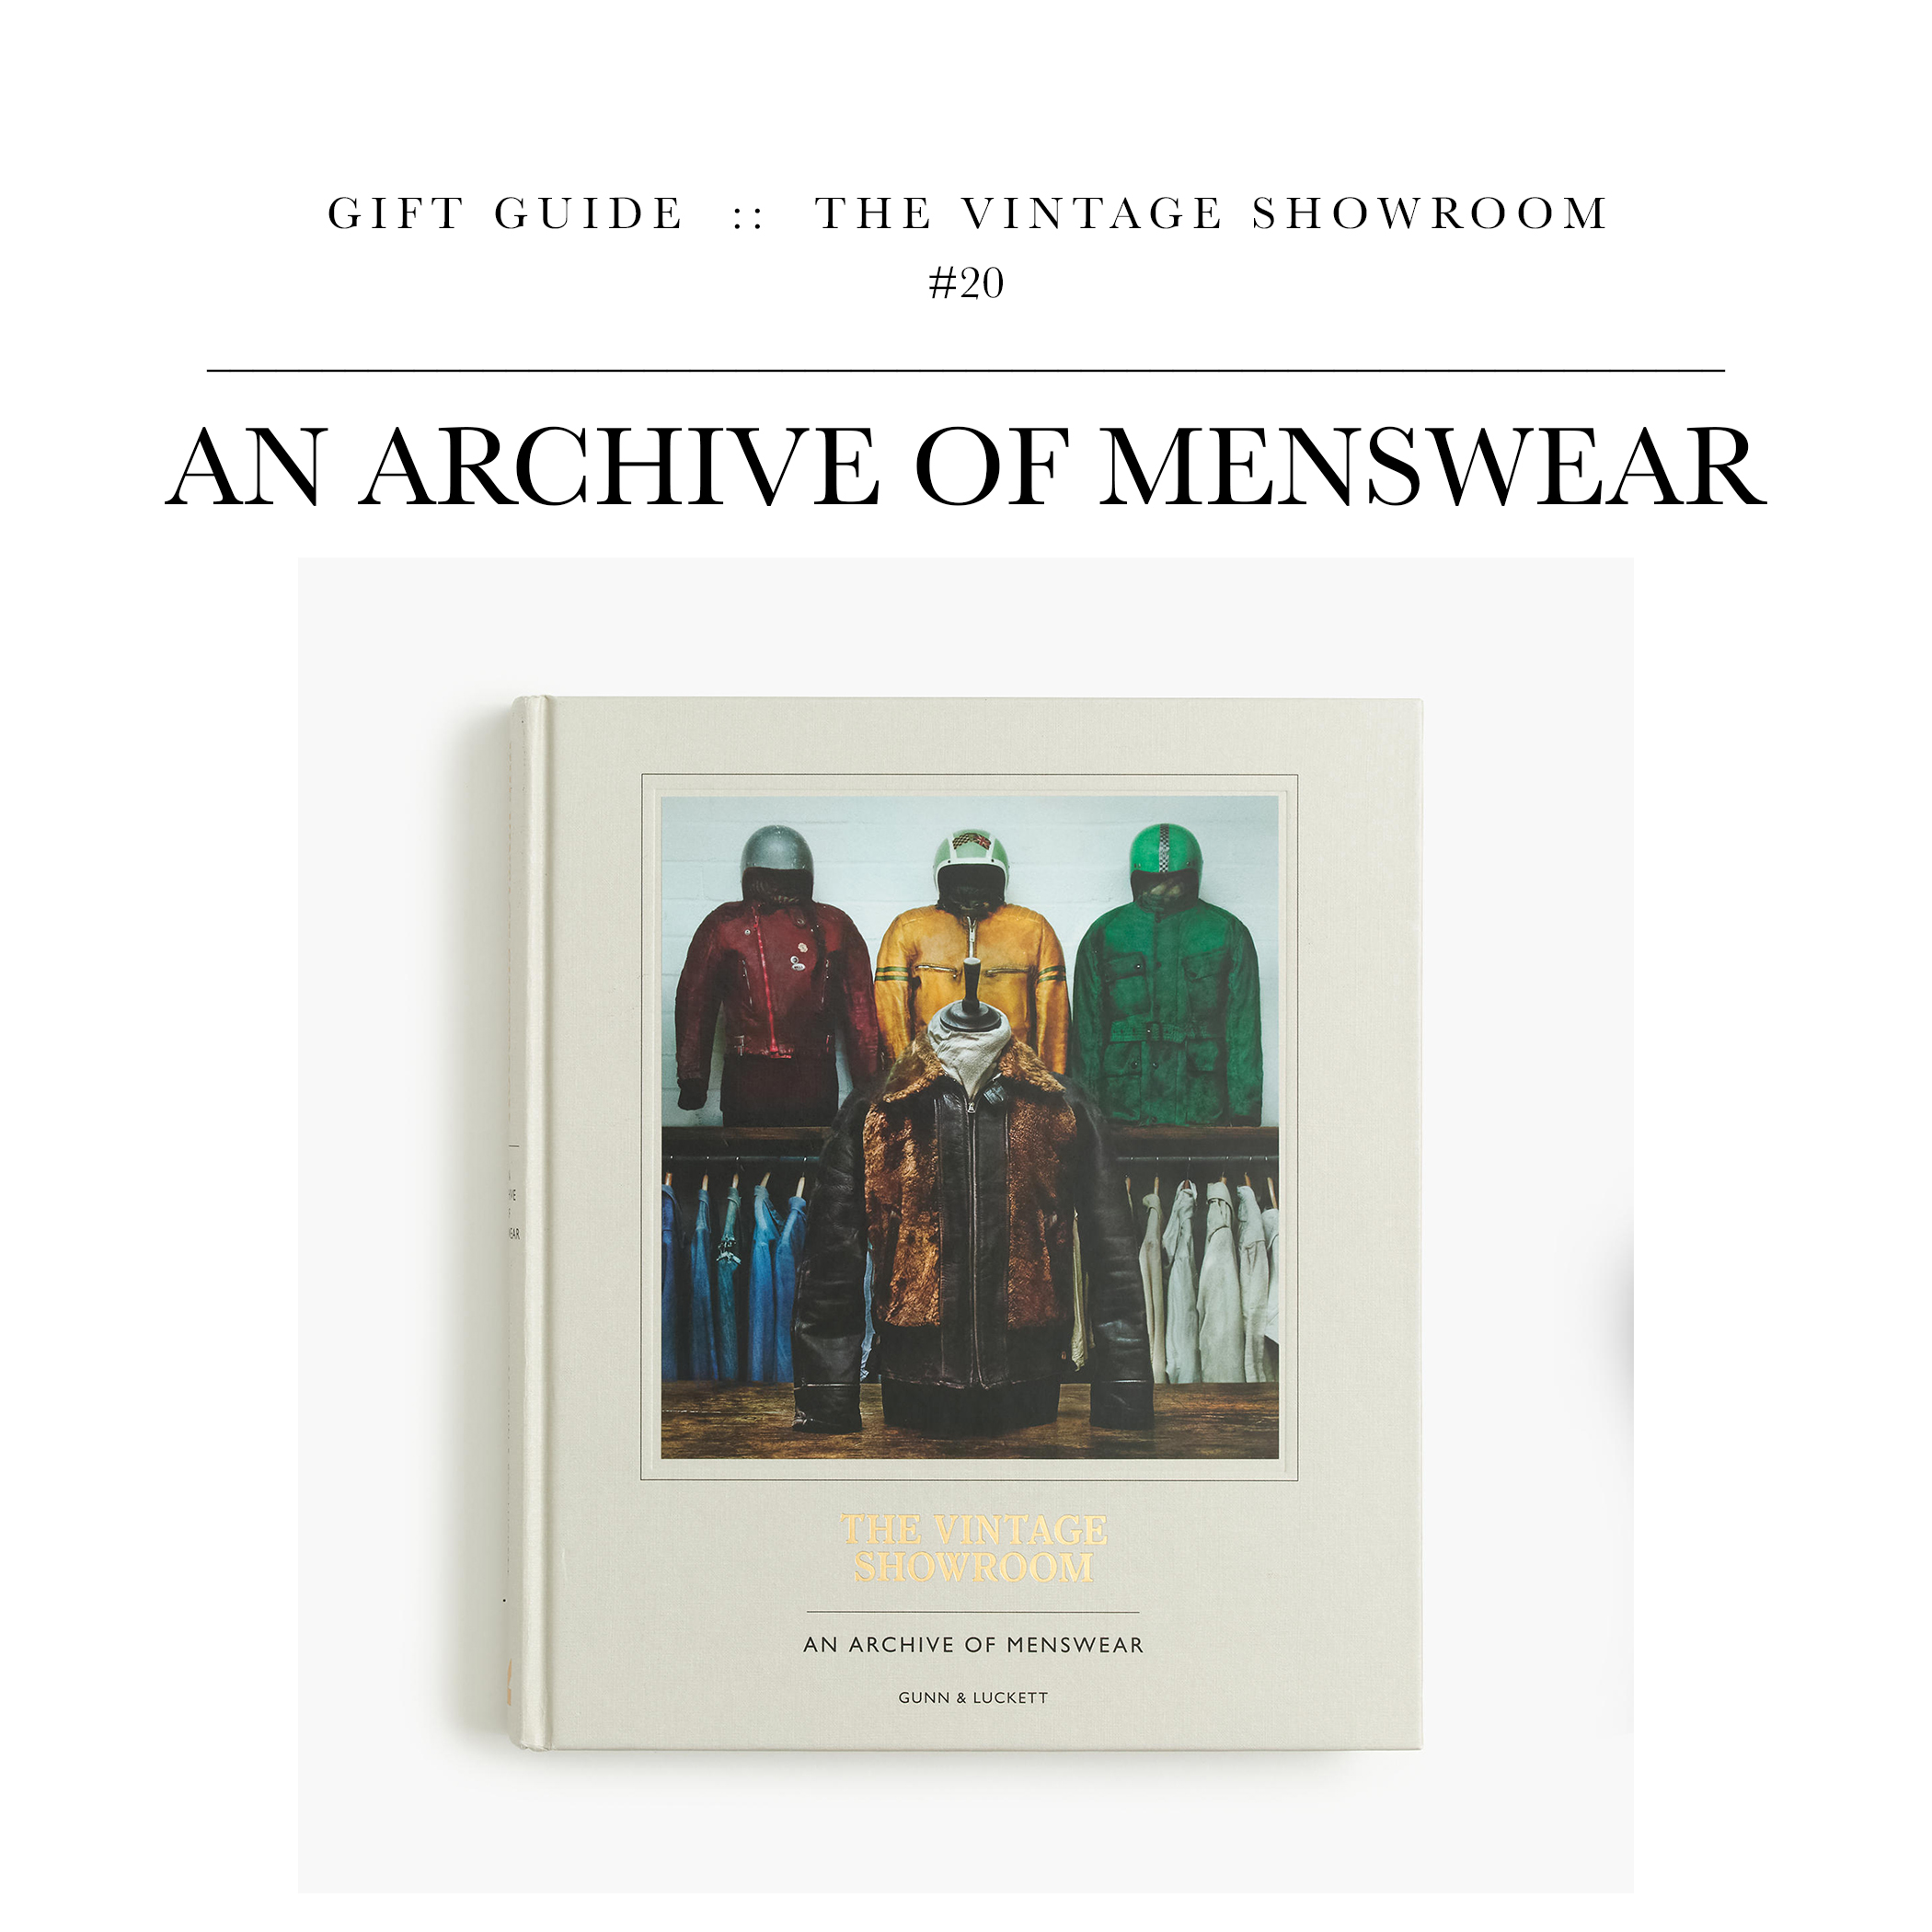 An Archive of Menswear  via The Vintage Showroom // A great coffee table book for the menswear enthusiast.